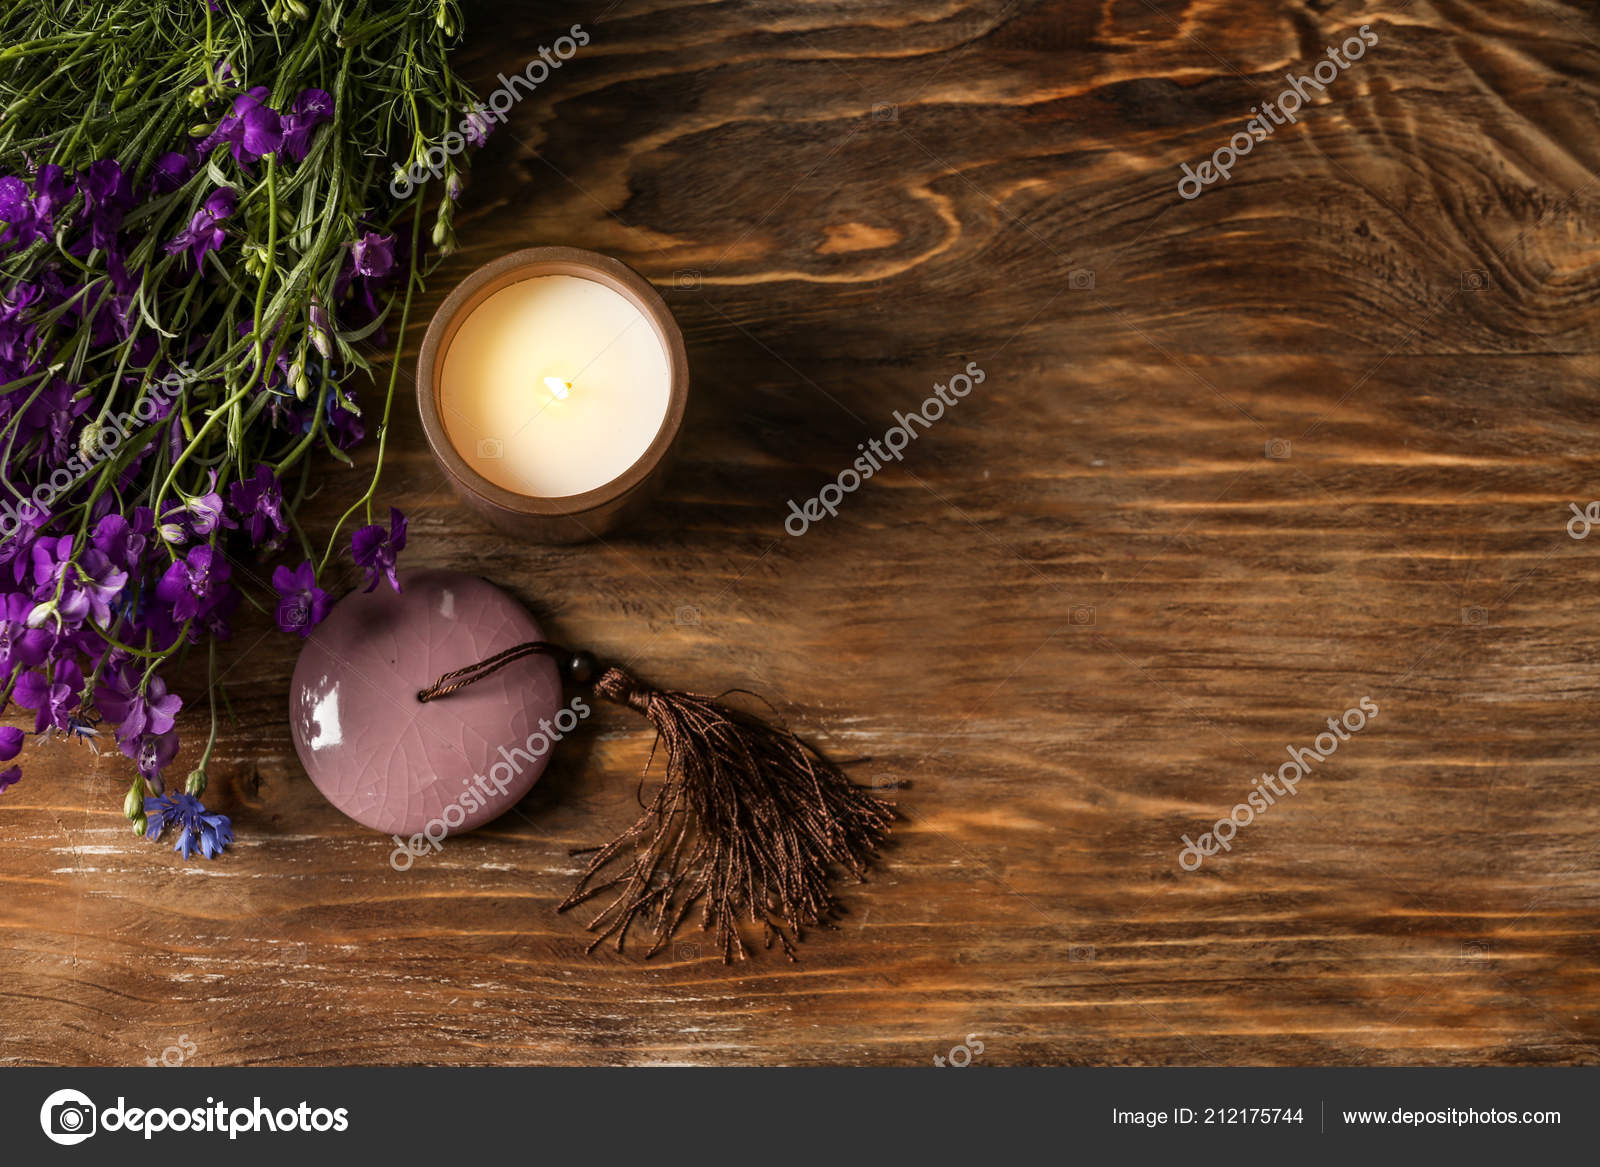 Burning Candle Beautiful Flowers Wooden Table — Stock Photo